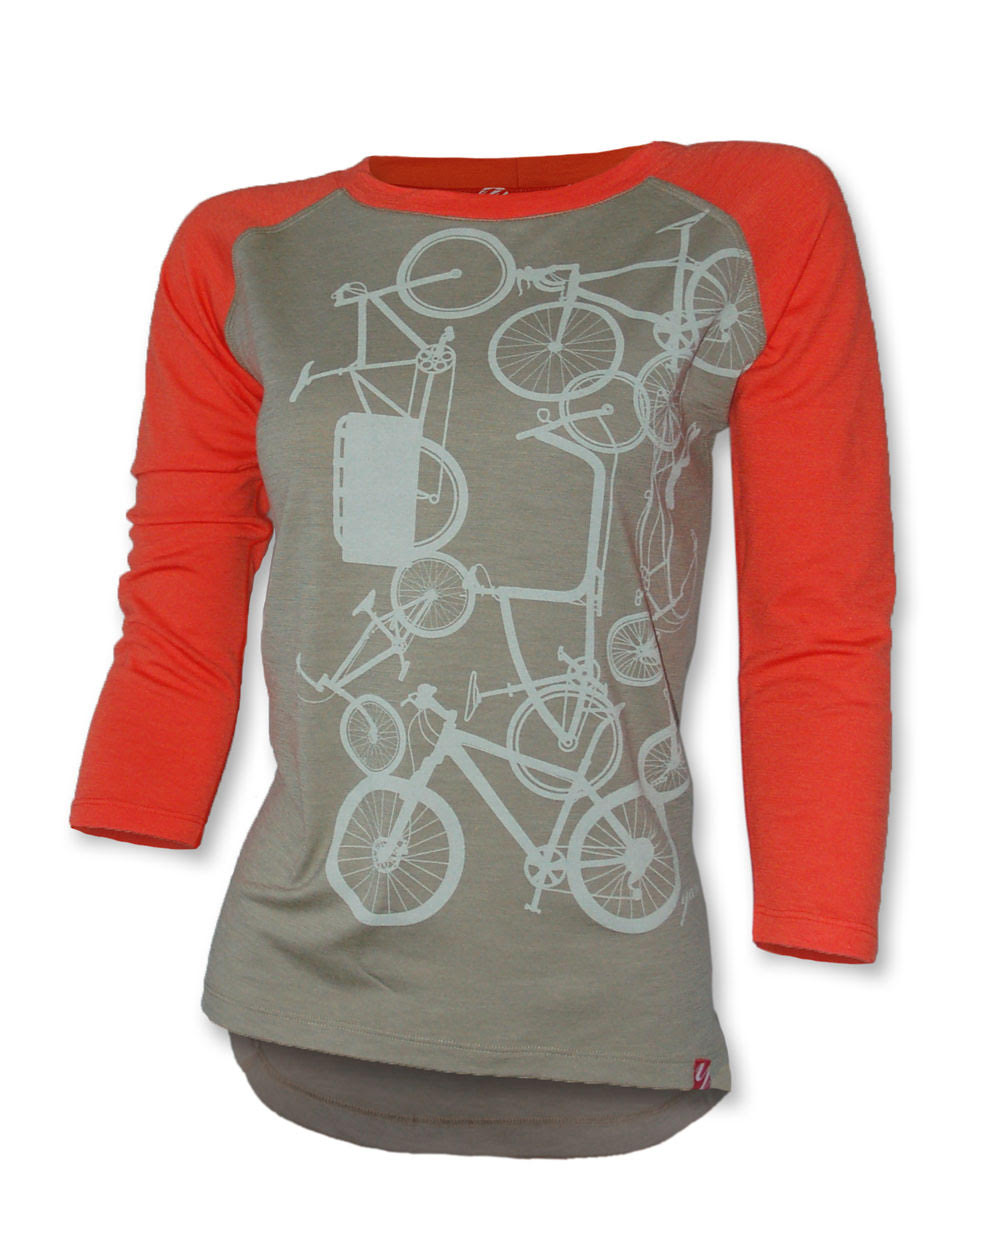 Yank Merino Women's 3/4 Riding Top